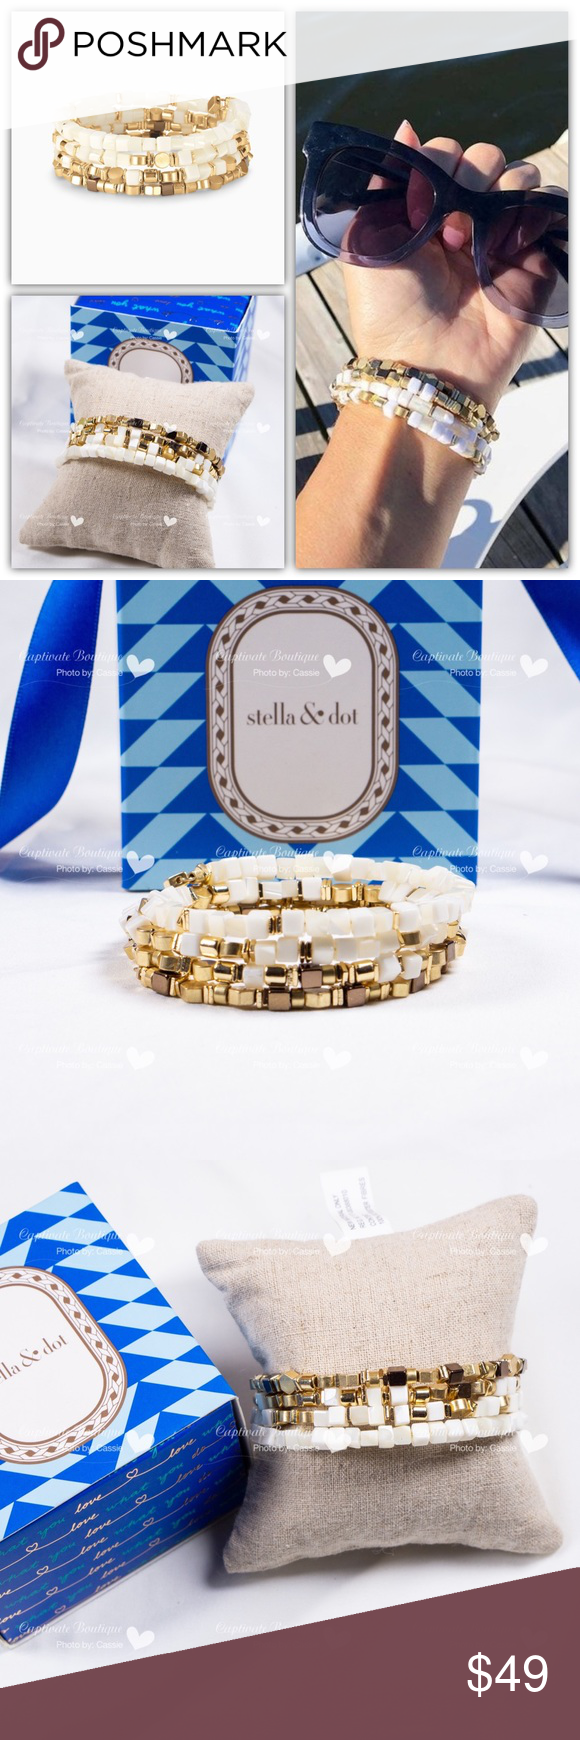 5179b24ea82 Stella and Dot Gia Coil Bracelet Brand new in box Shiny and vintage gold,  bronze, and white alternating dimensional beads coil into a spiral bangle.